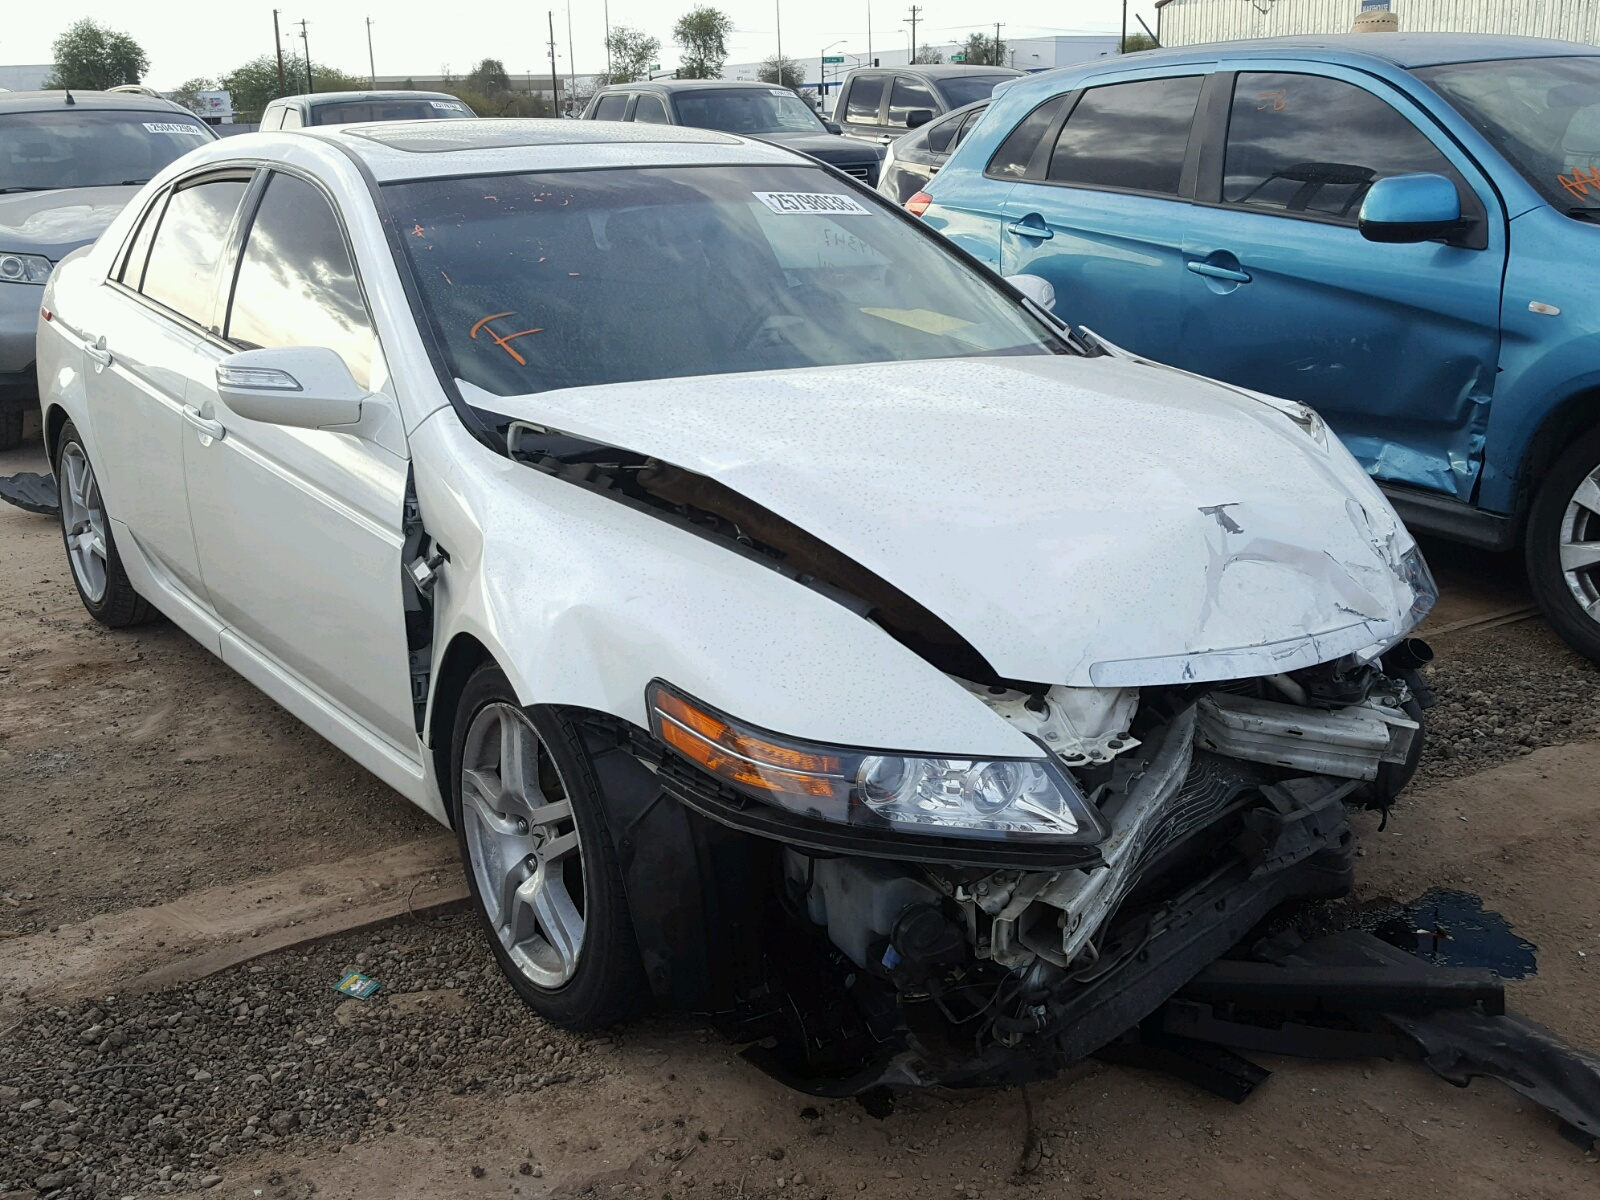 for original specs acura modification tl cardomain ride info sale at photos